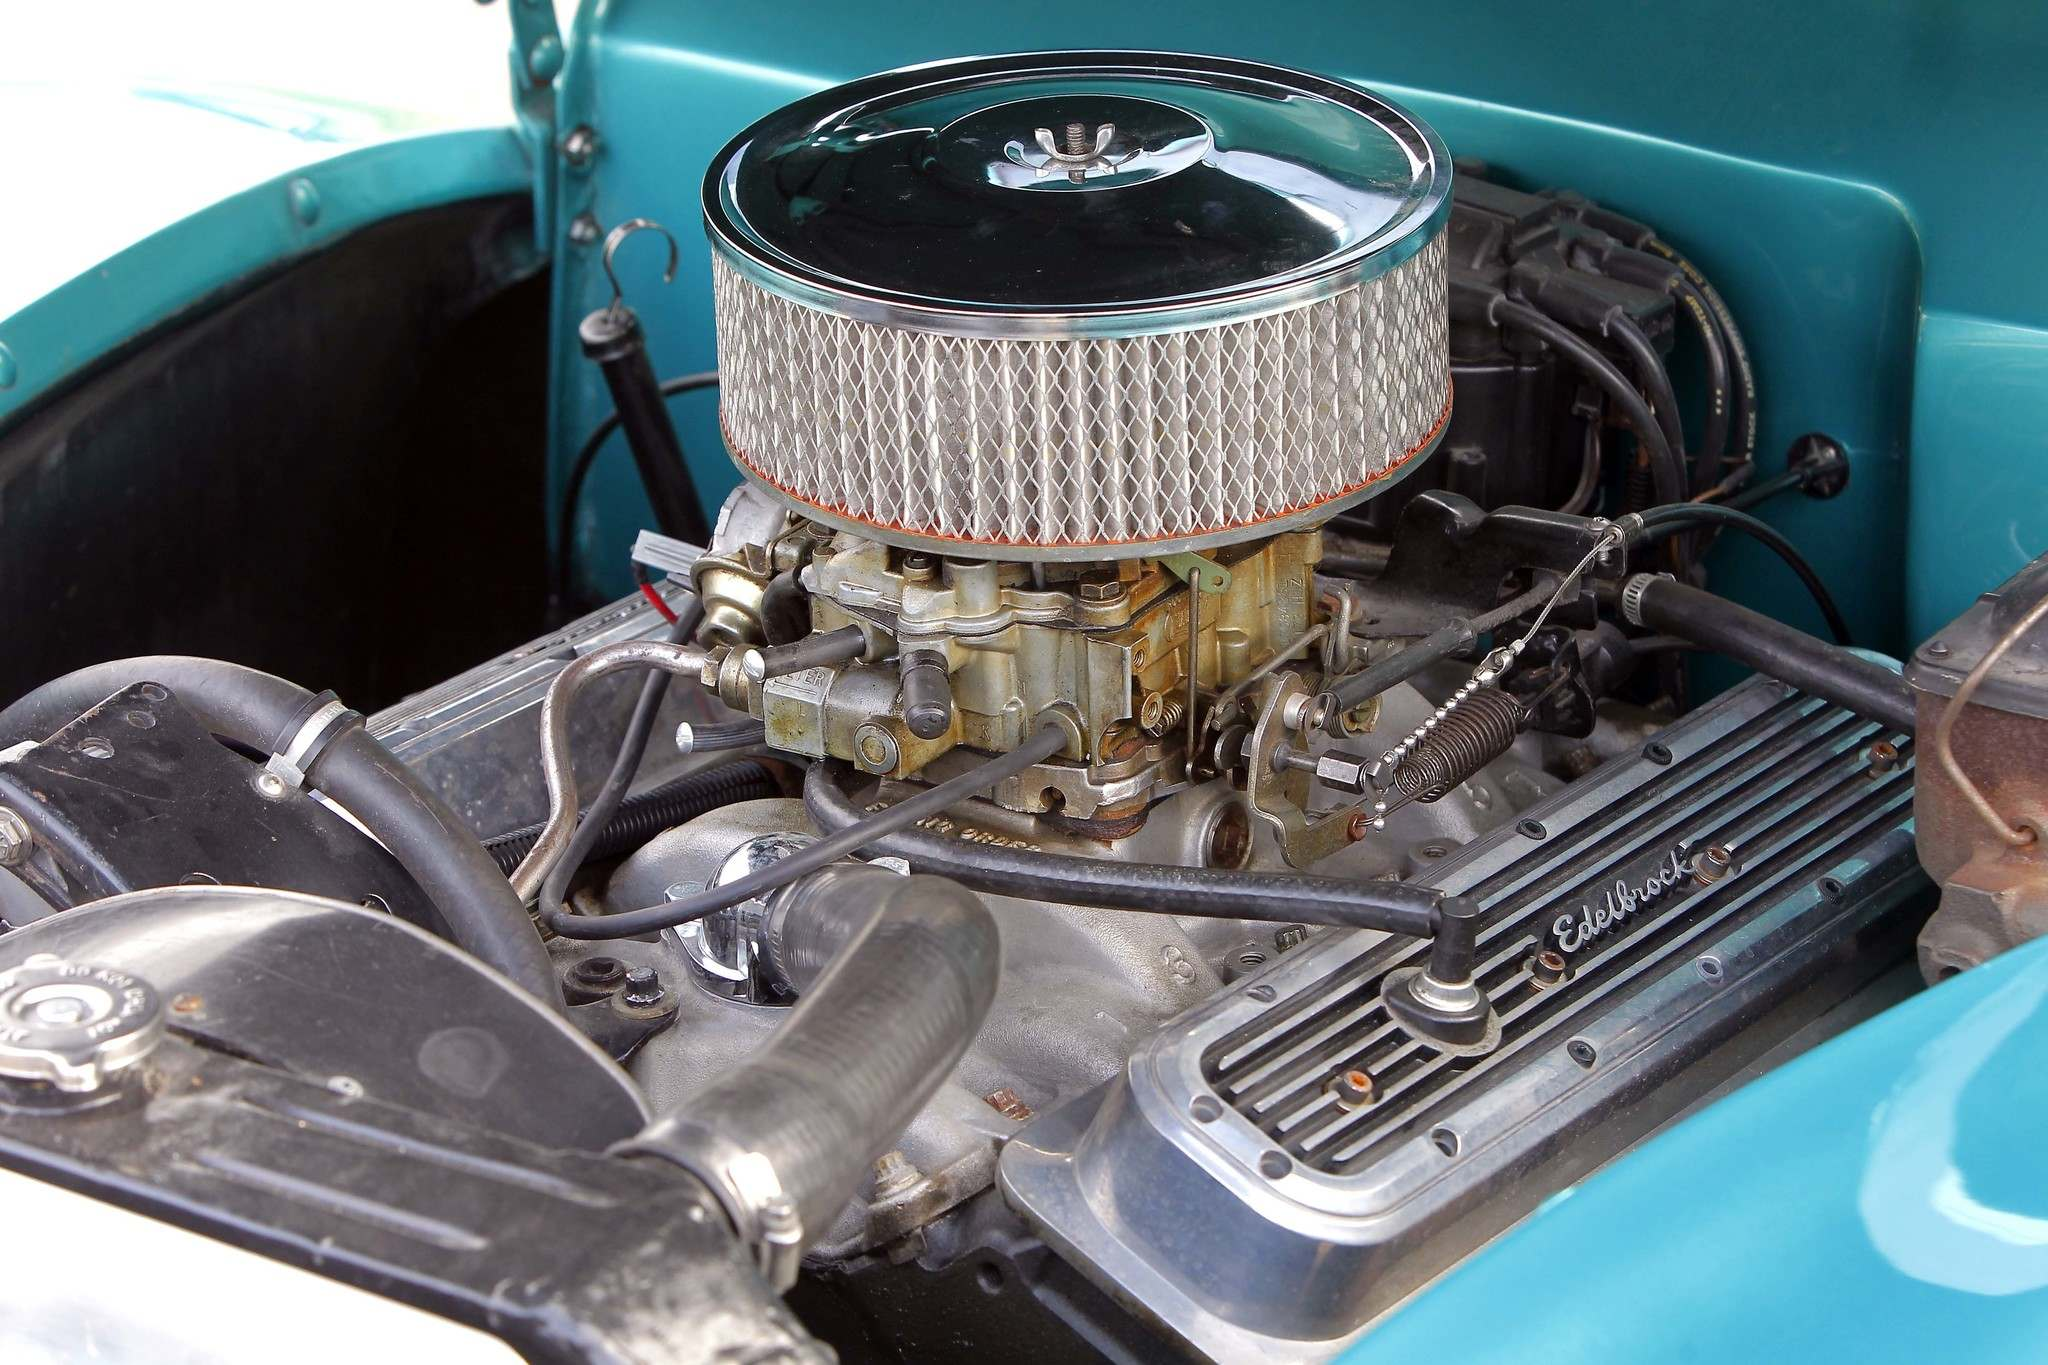 BORIS MINKEVICH / WINNIPEG FREE PRESSBetcher's Ford now has a 1974 Chevy vintage 350 bored to 355 cubic inches, with a 9.5:1 compression ratio and topped off with modern cylinder heads, aluminum intake manifold and 750 cfm Quadra-Jet four-barrel carburetor and H.E.I. ignition.